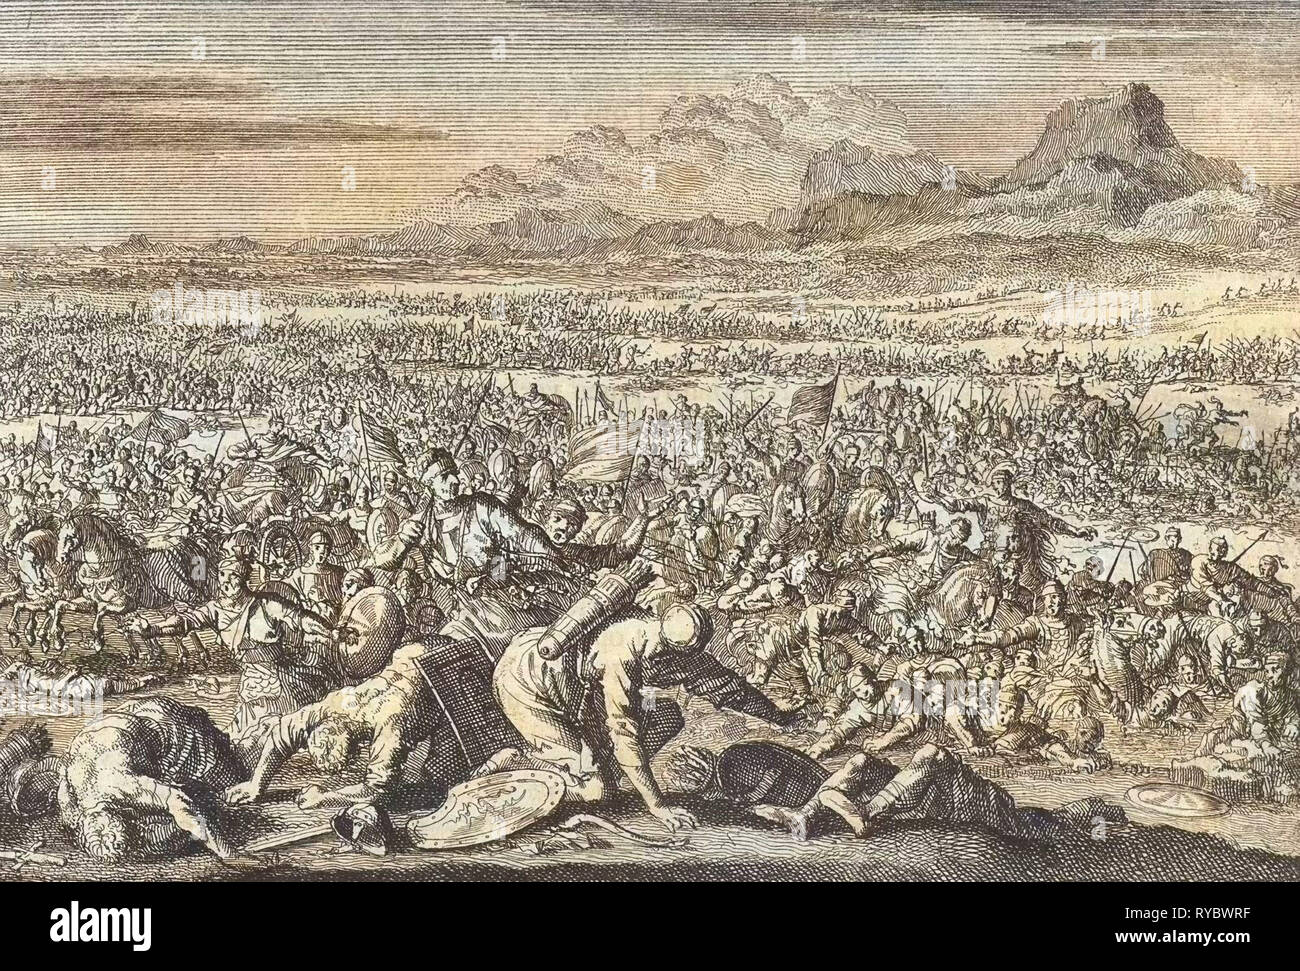 Armies of Sodom and Gomorrah defeated, Jan Luyken, Pieter Mortier, 1703 - 1762 - Stock Image